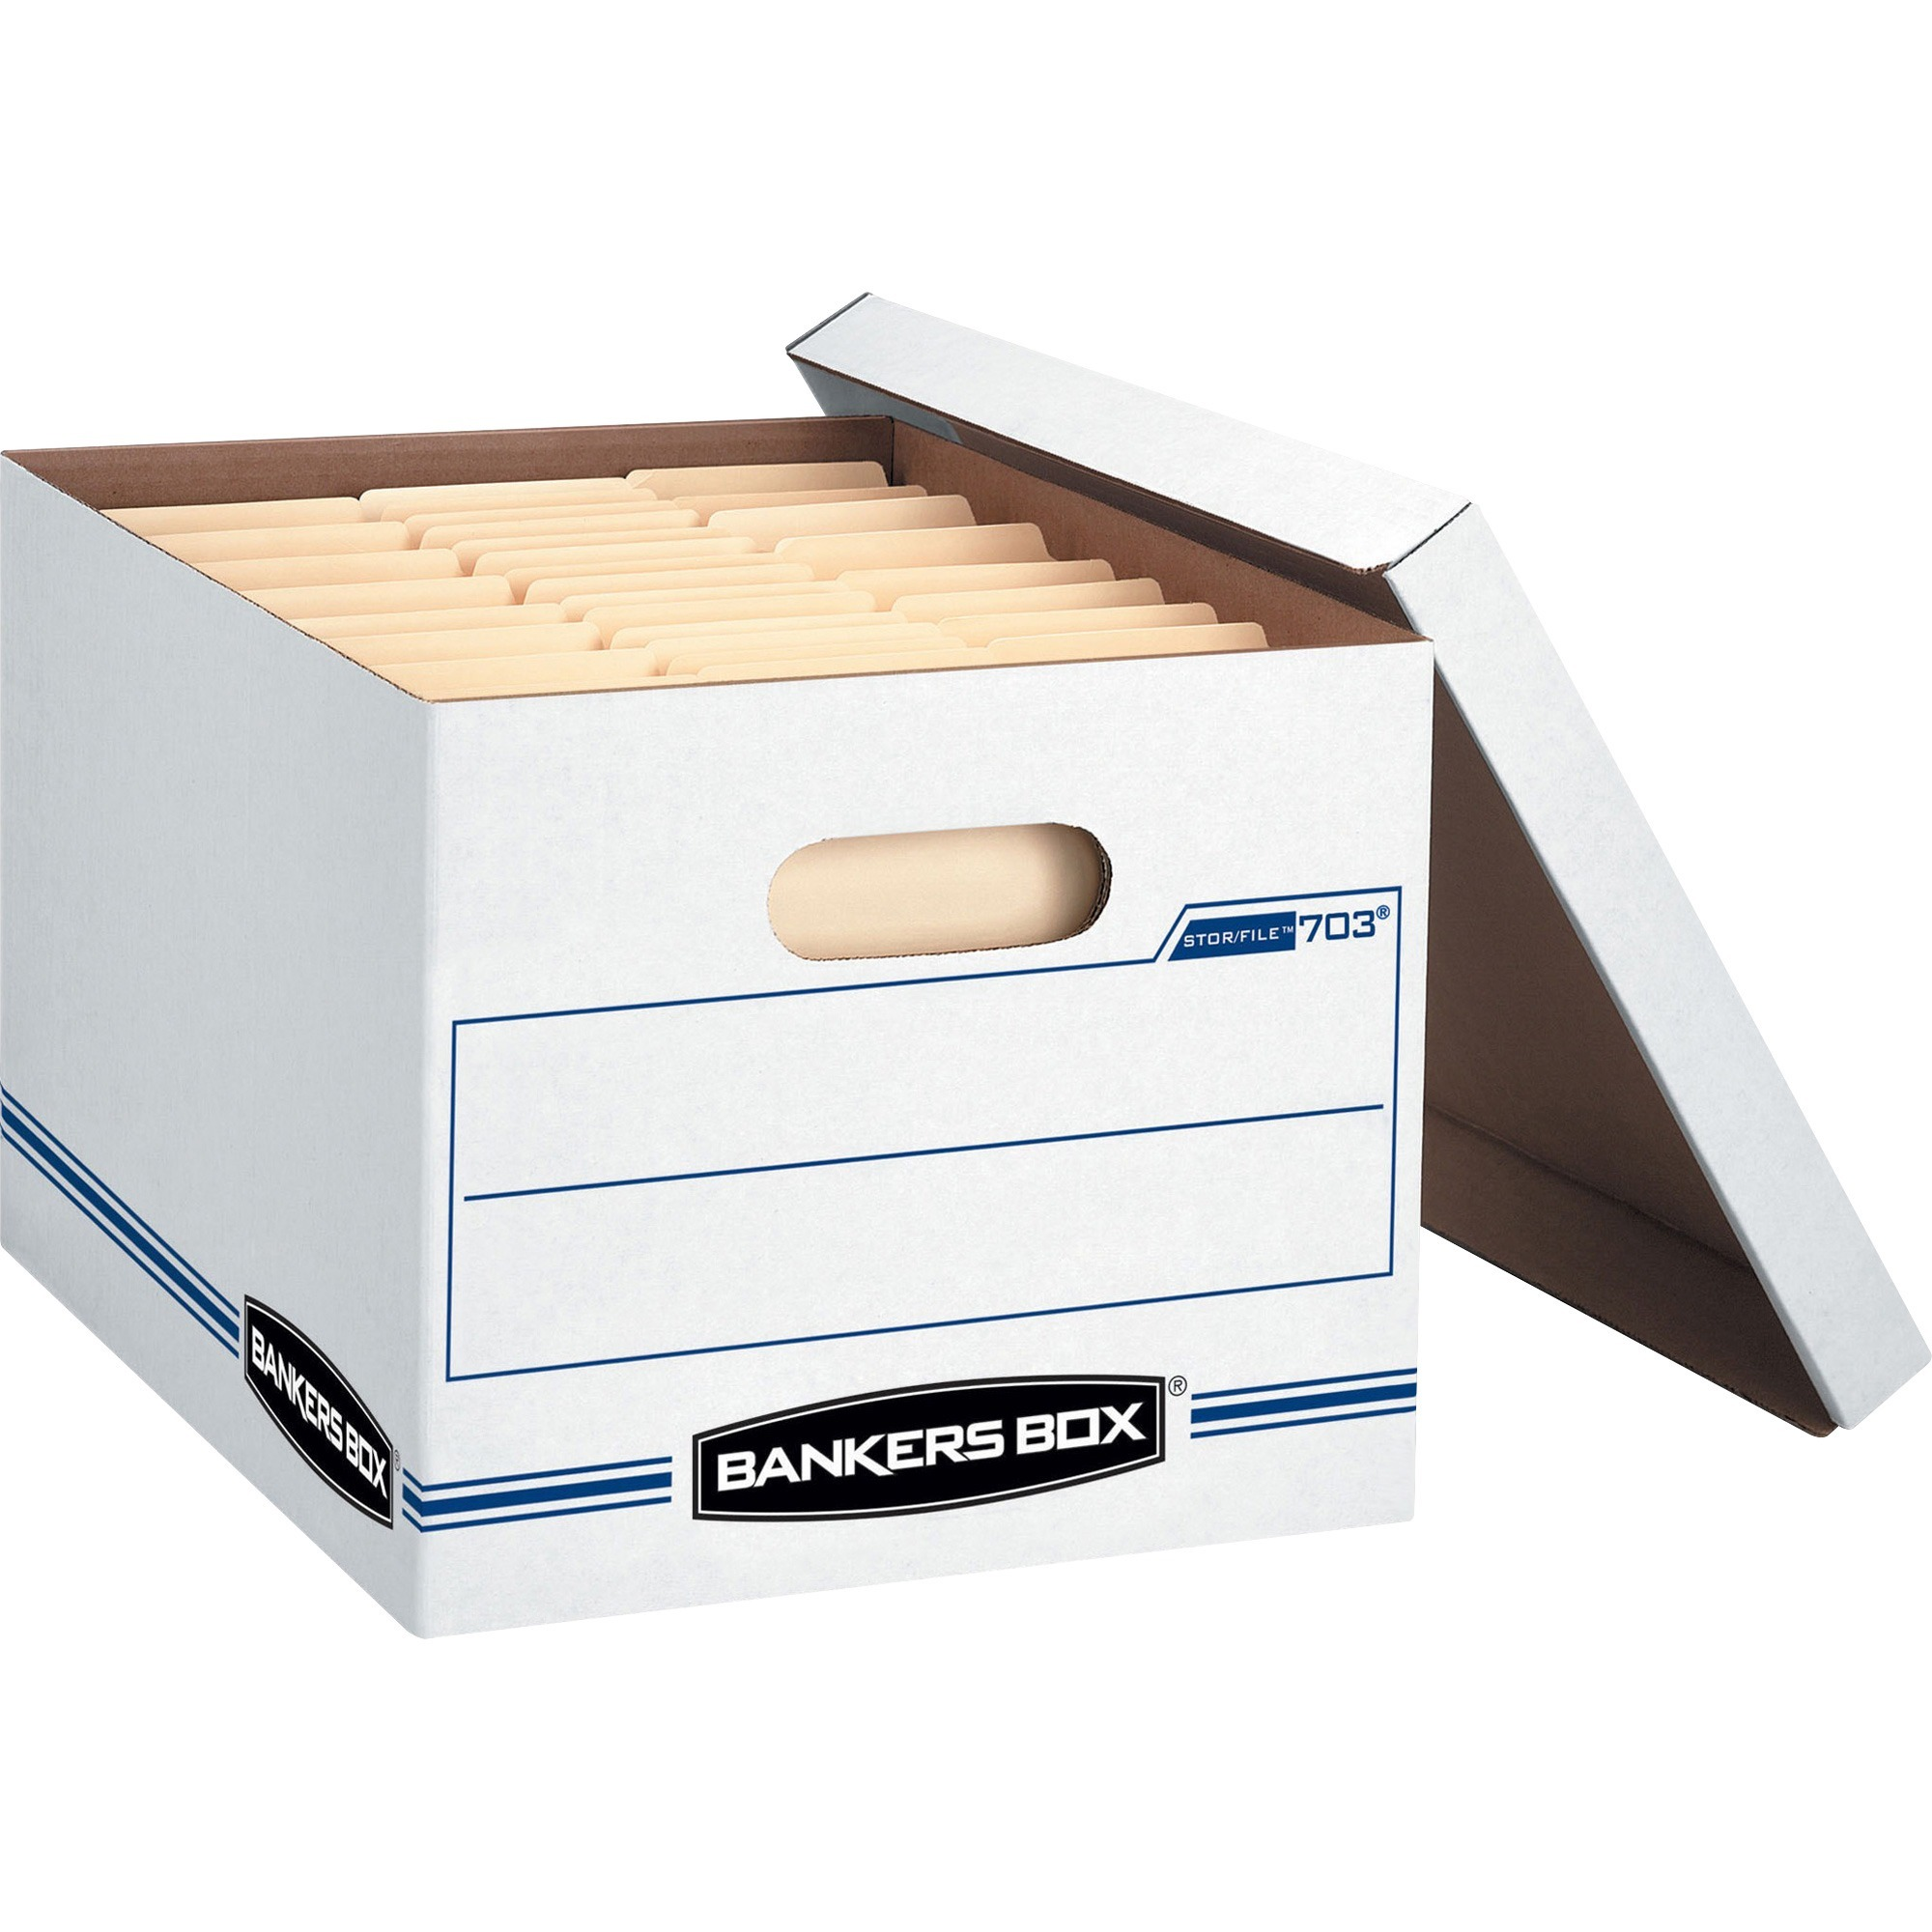 Bankers Box Stor/File - Letter/Legal, Lift-Off Lid